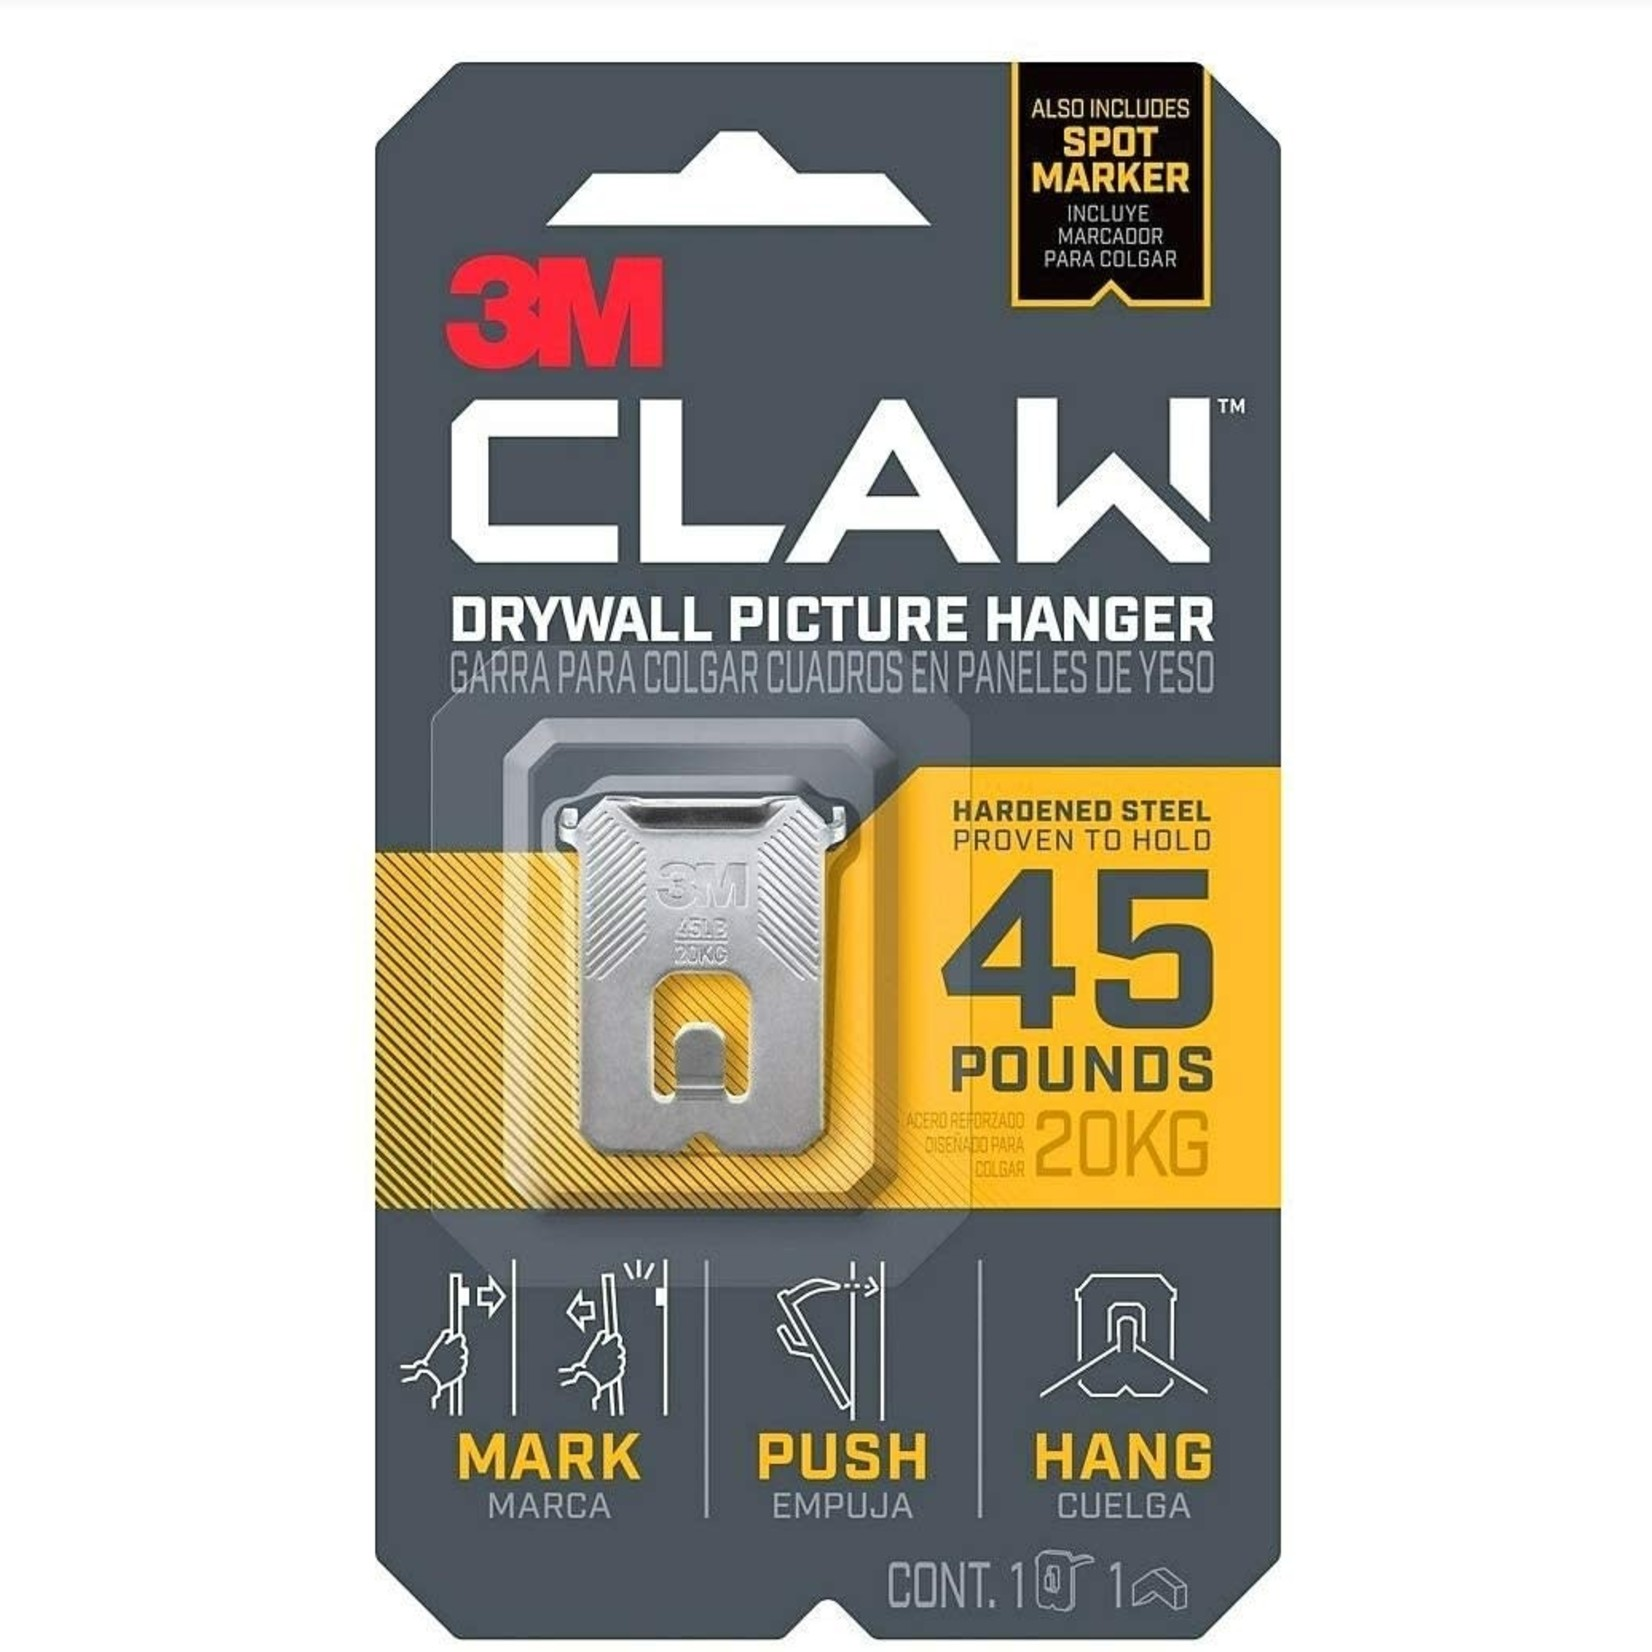 3M CLAW Strong Durable Drywall Picture Hanger (45 LB)